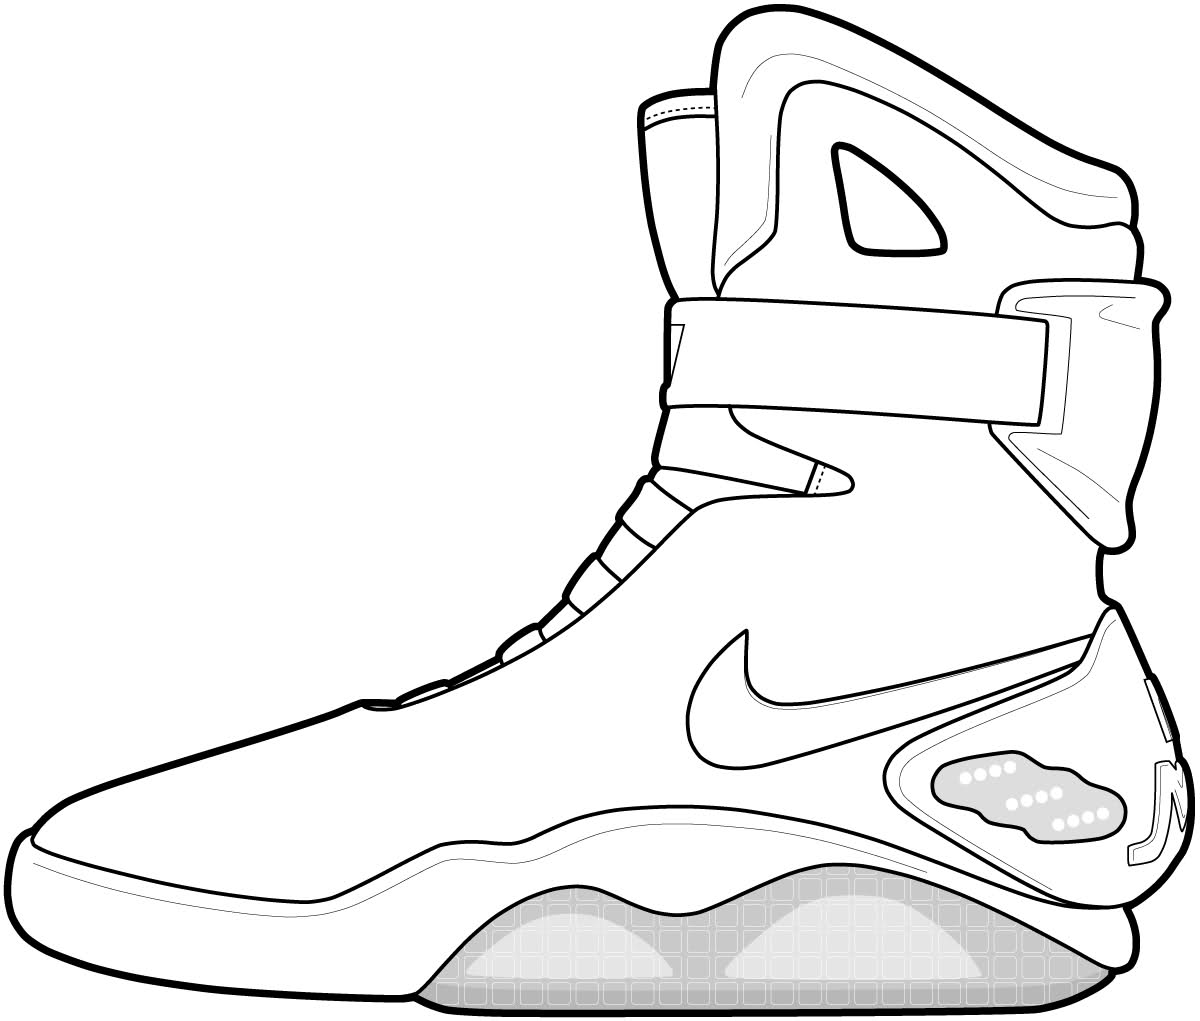 shoes to color basketball shoe coloring pages download and print for free color to shoes 1 1